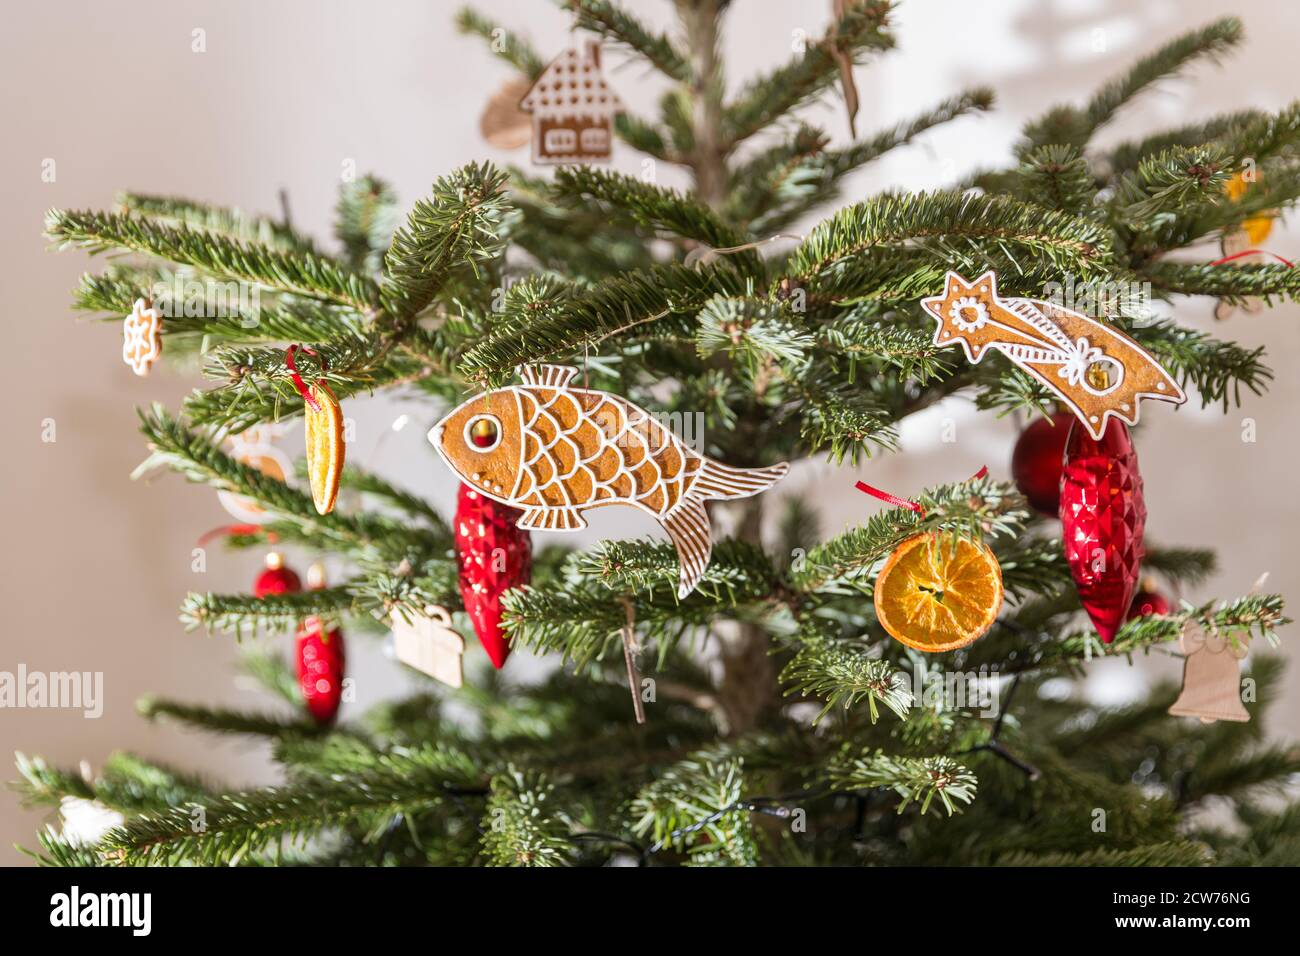 Close Up Of Natural Christmas Tree Decorated In Retro Style Red Decorations And Ornate Baked Gingerbreds Or Dry Orange Slice Hanging On Spruce Branch Stock Photo Alamy